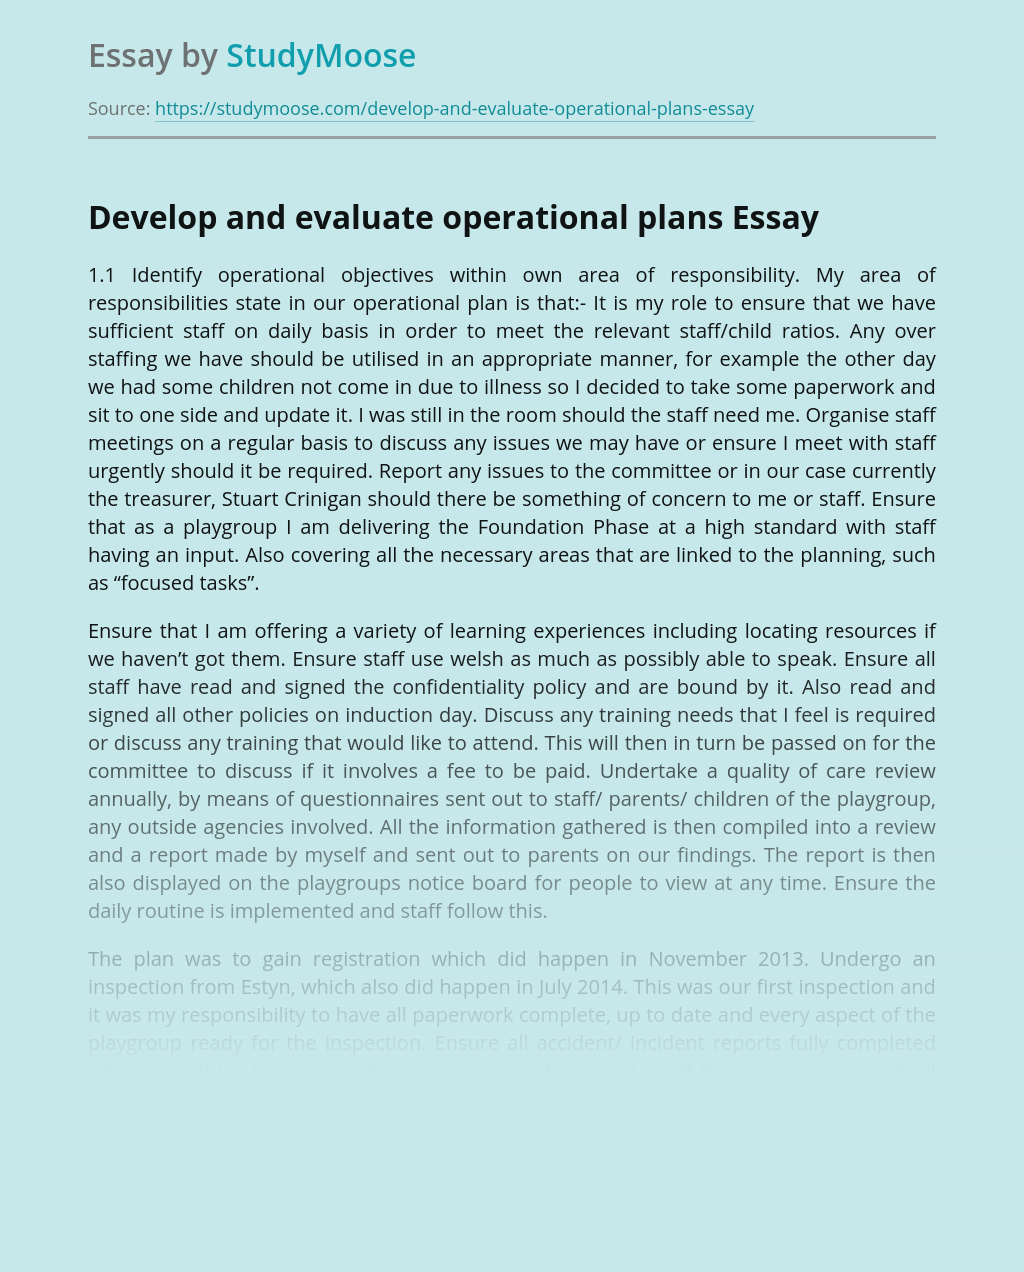 Develop and Evaluate Operational Plans